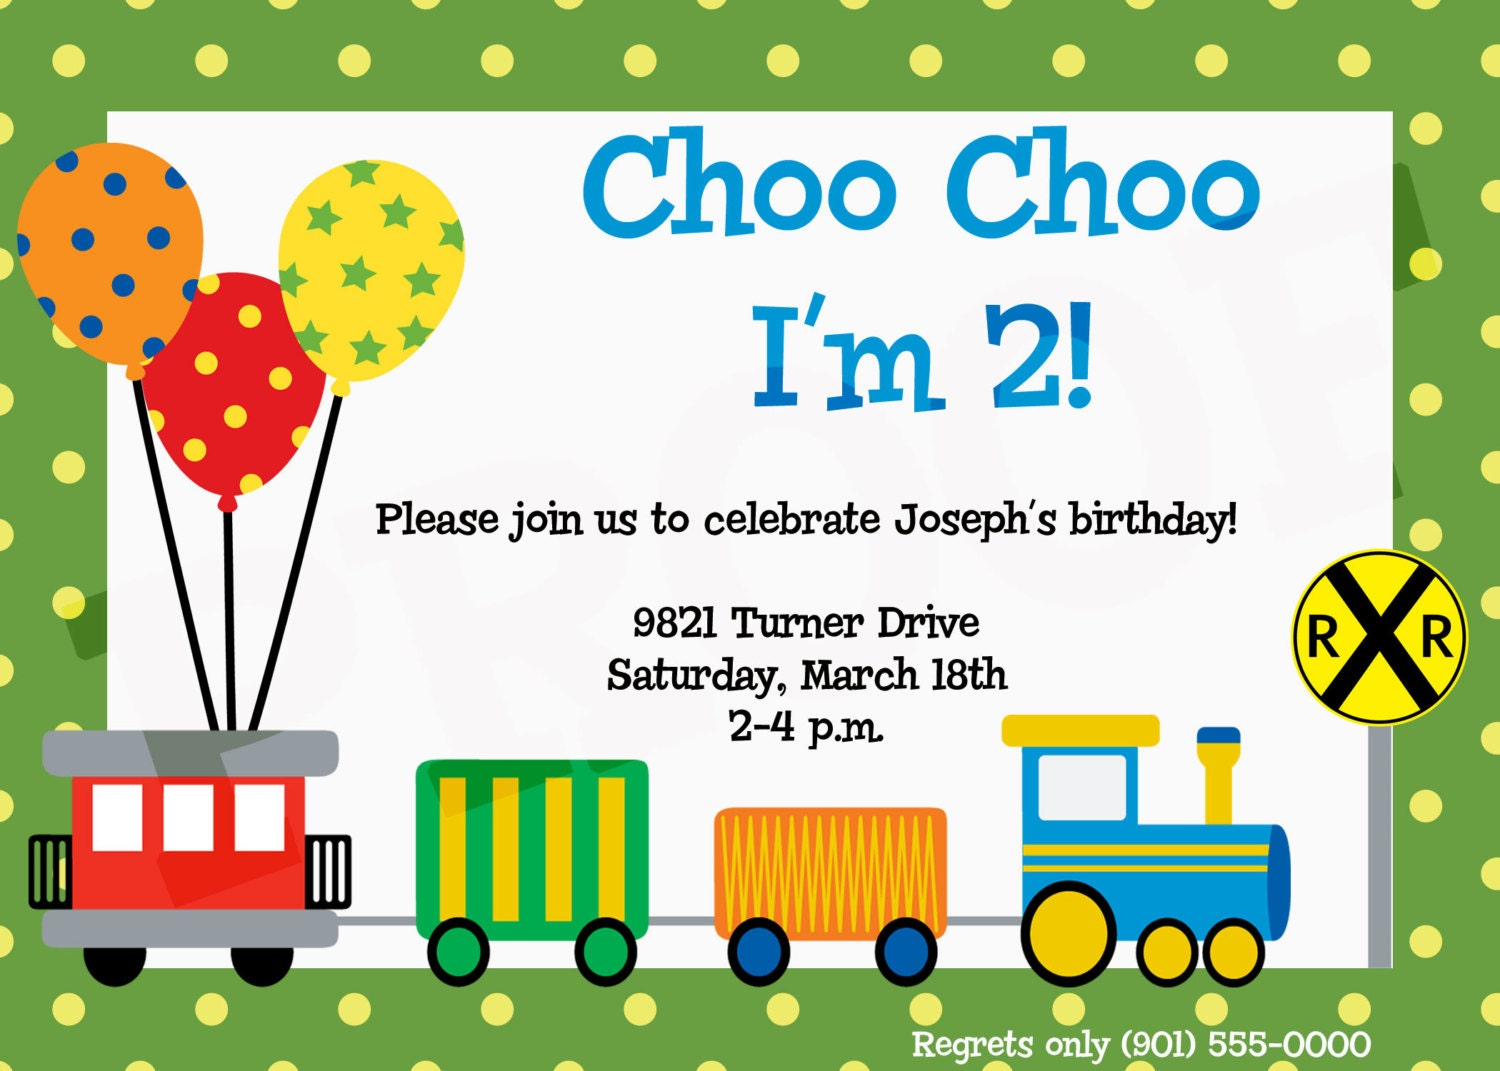 train birthday train party train invitation train birthday, Party invitations